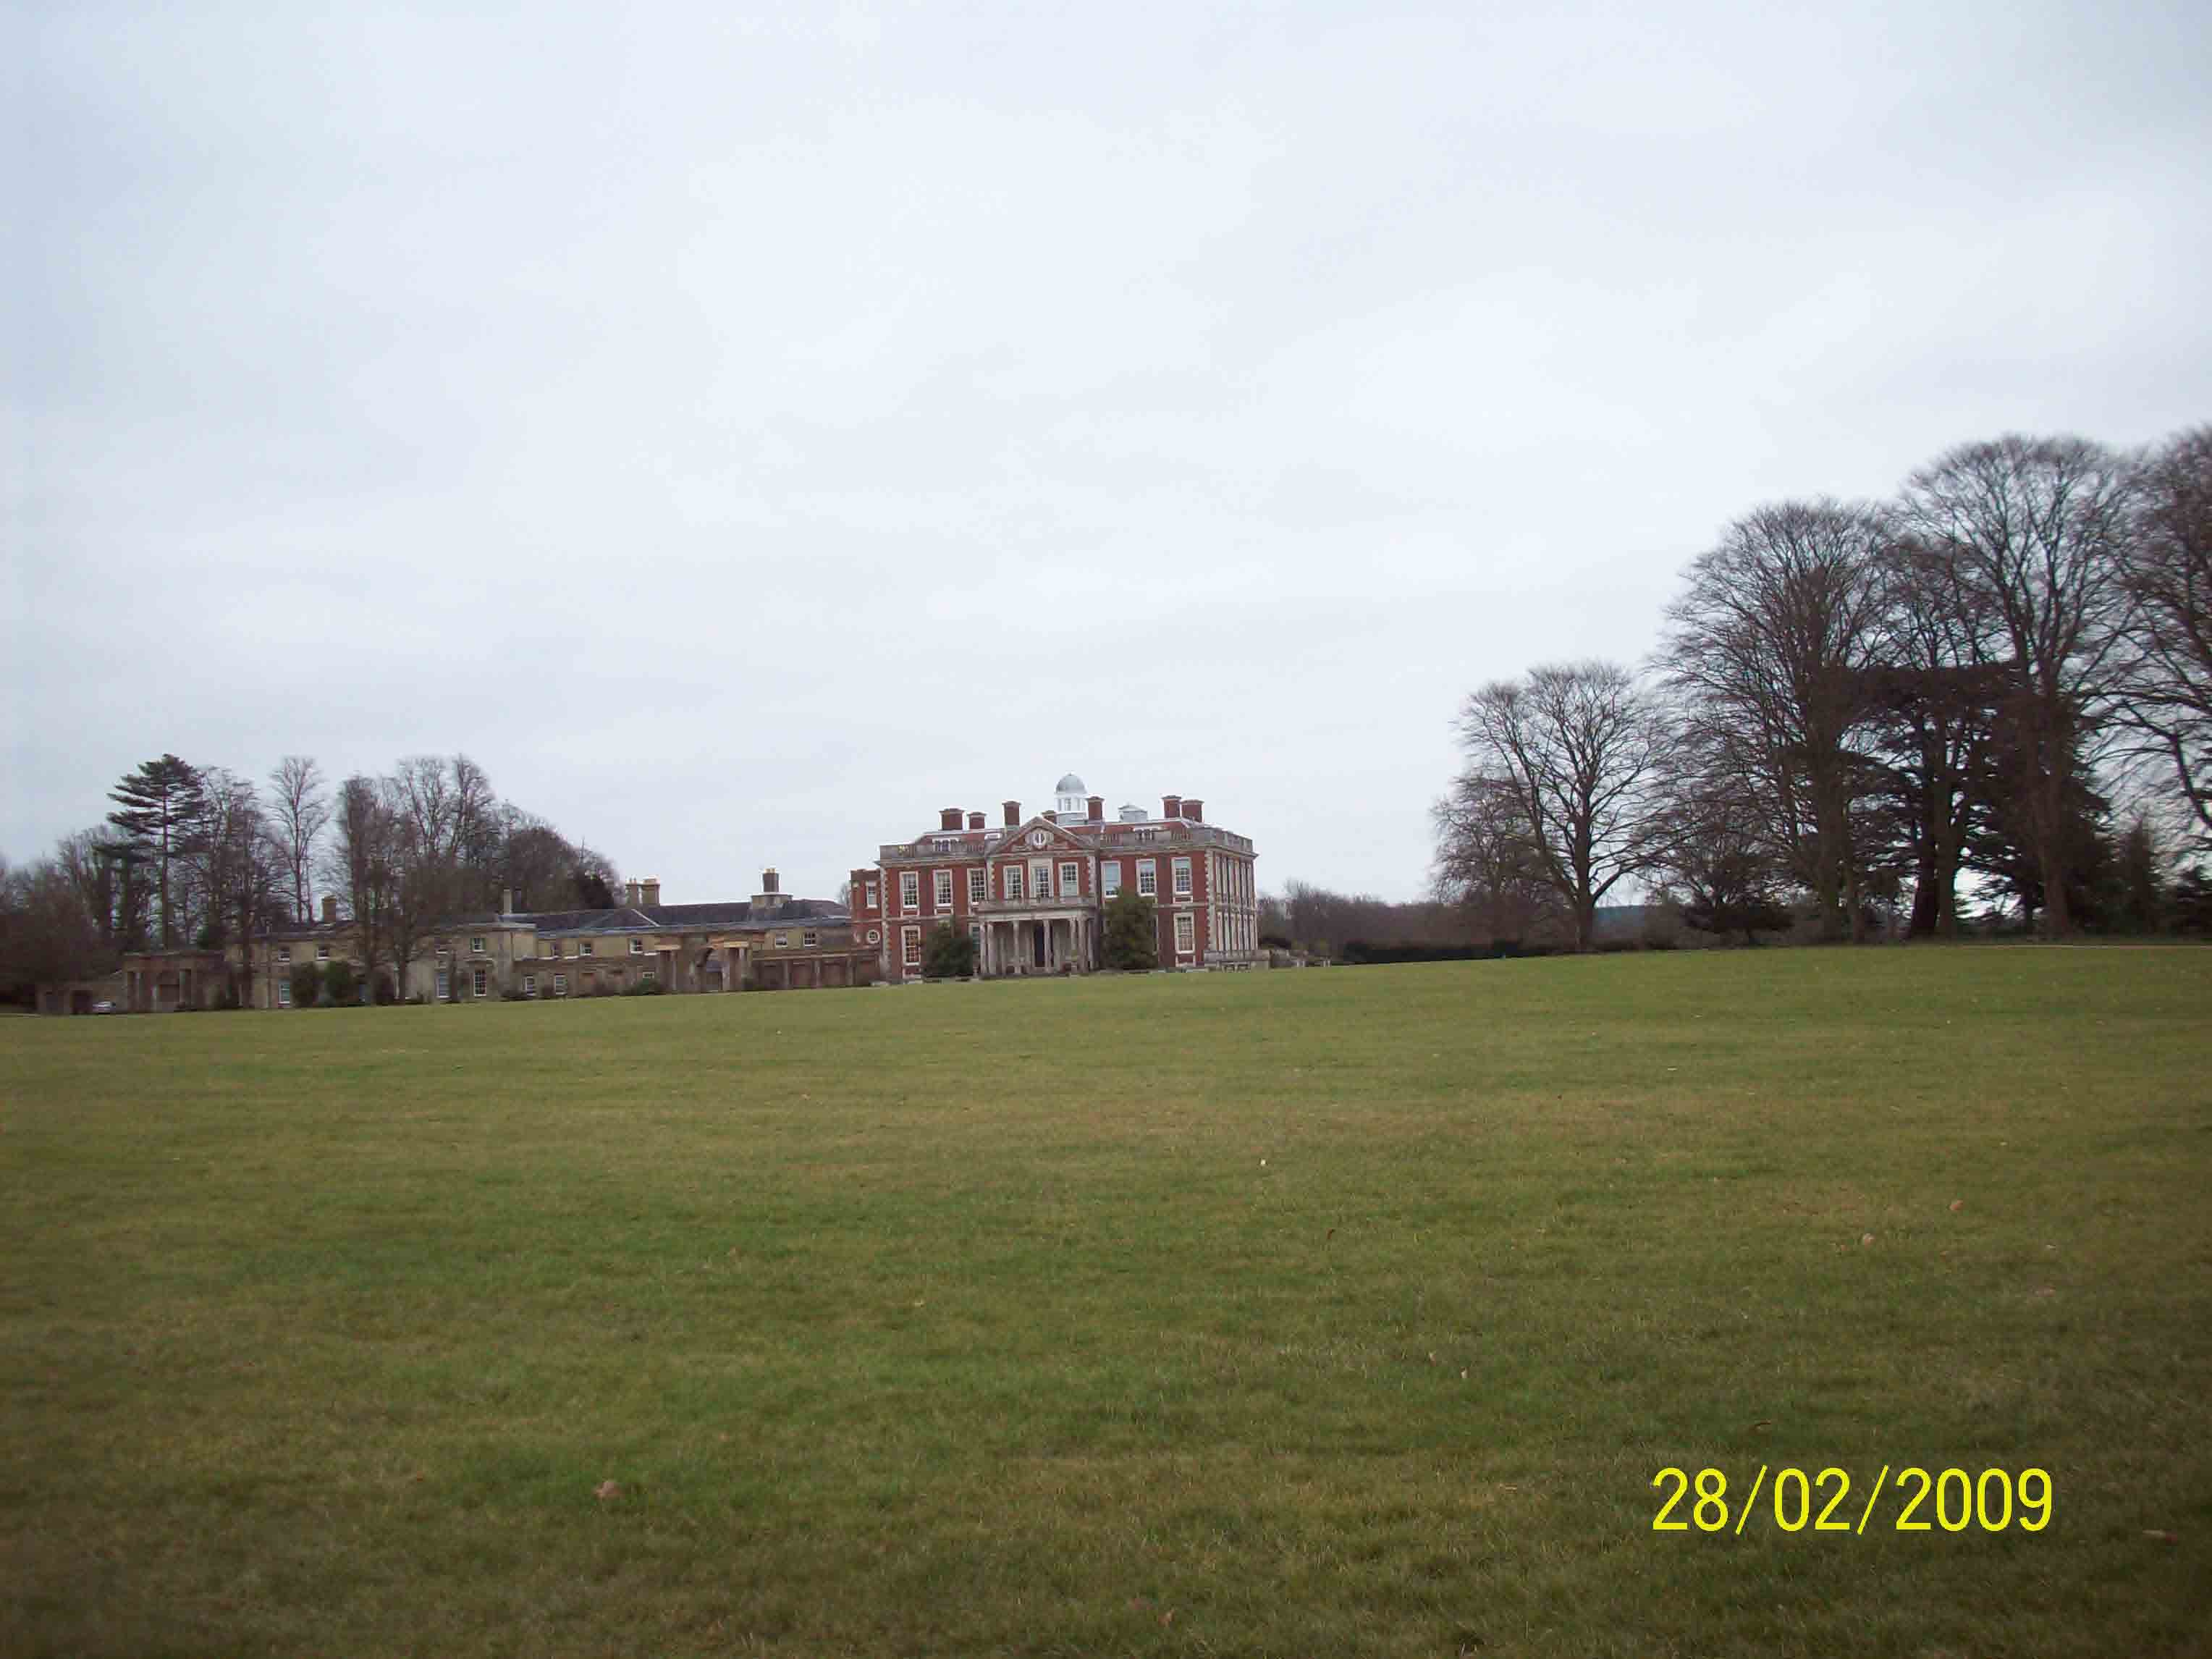 27-feb-09-rowlands-castle-003-1.jpg